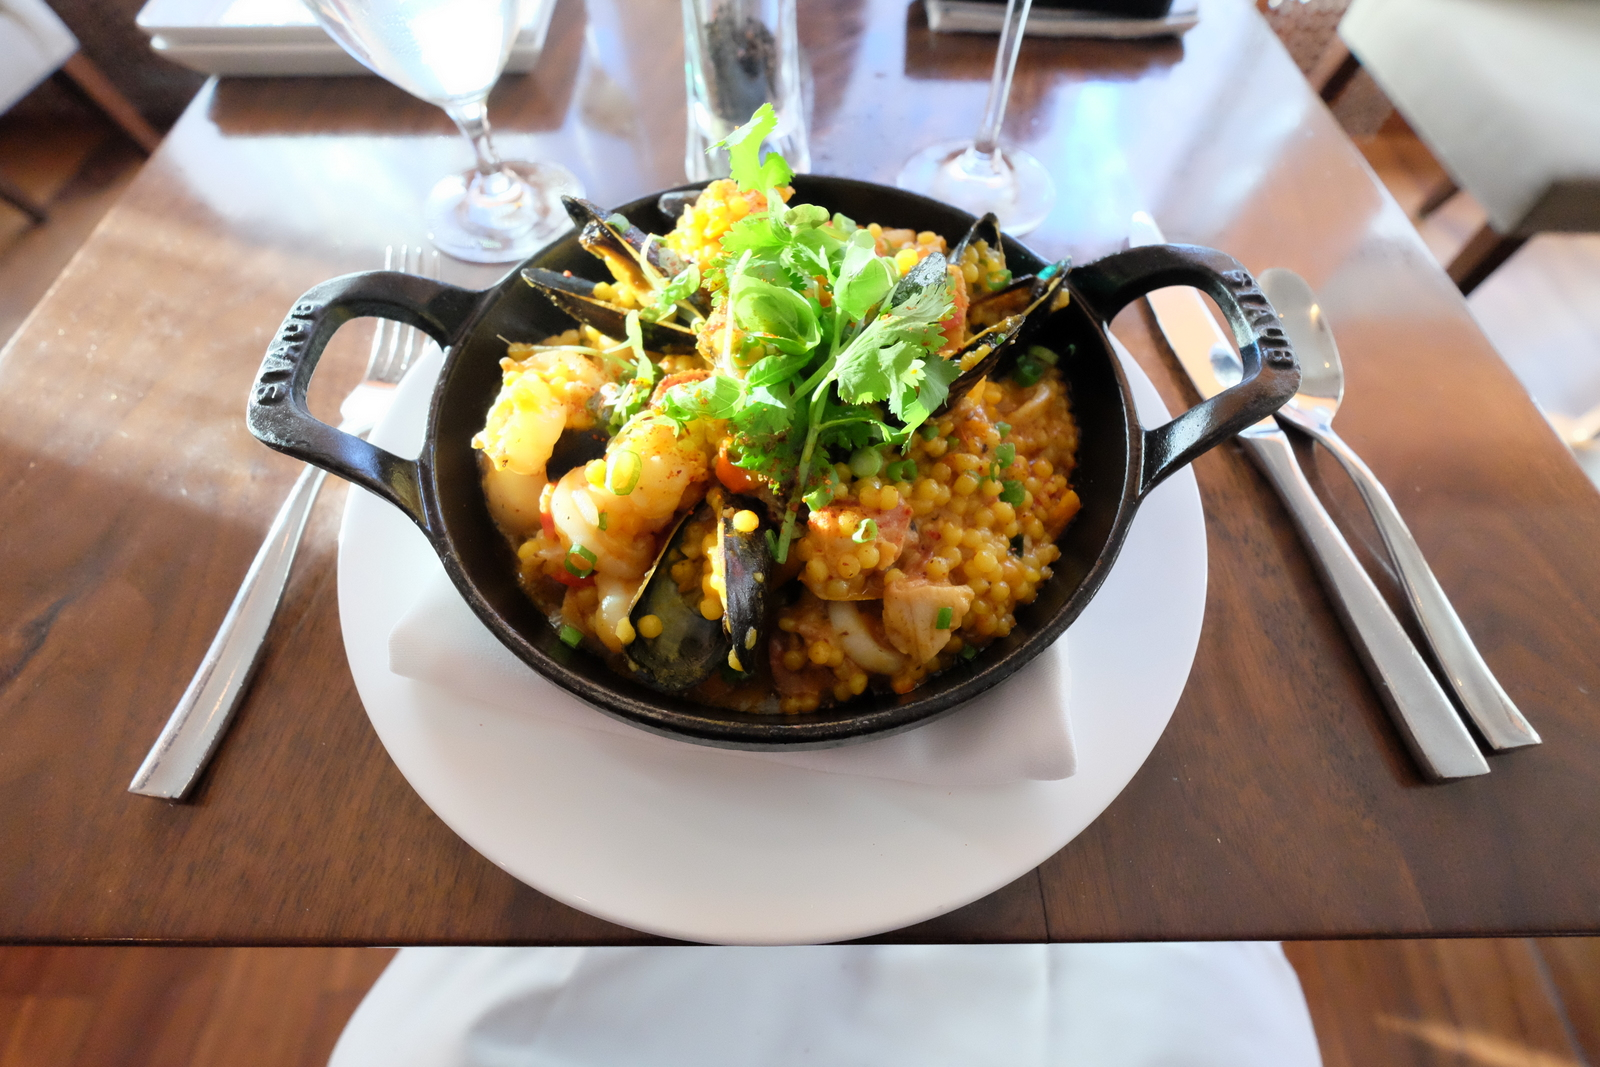 Travellers say delicious local food, like this dish served at the Conrad Hotel New York, is a big part of making them happy with their holidays. JIM BYERS PHOTO